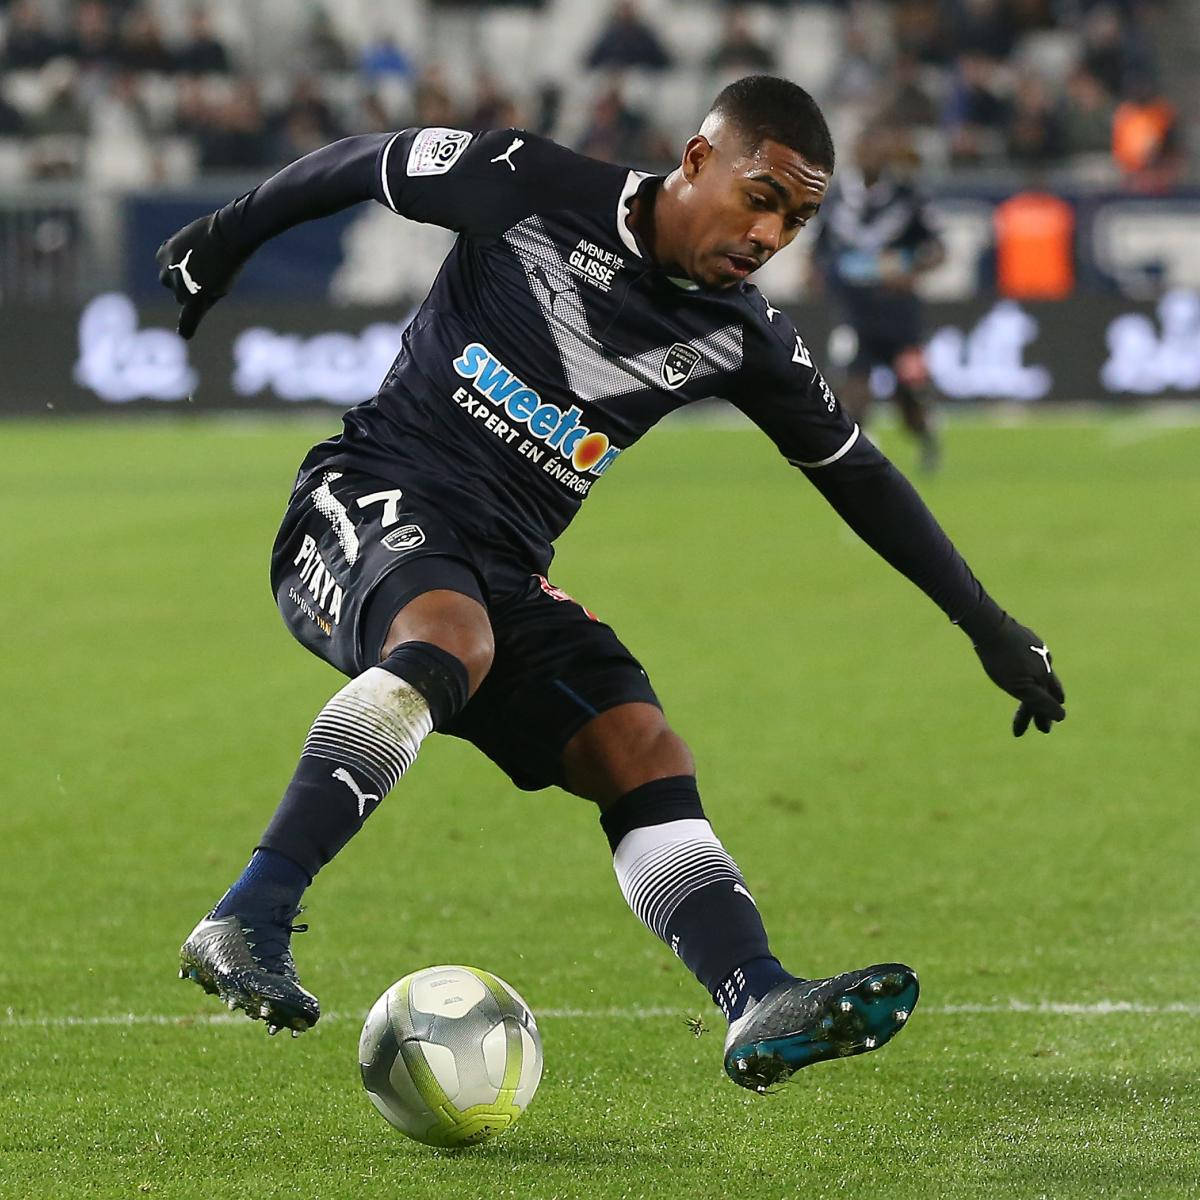 Arsenal Transfer News: Gunners to Bid for Malcom in Latest Rumours